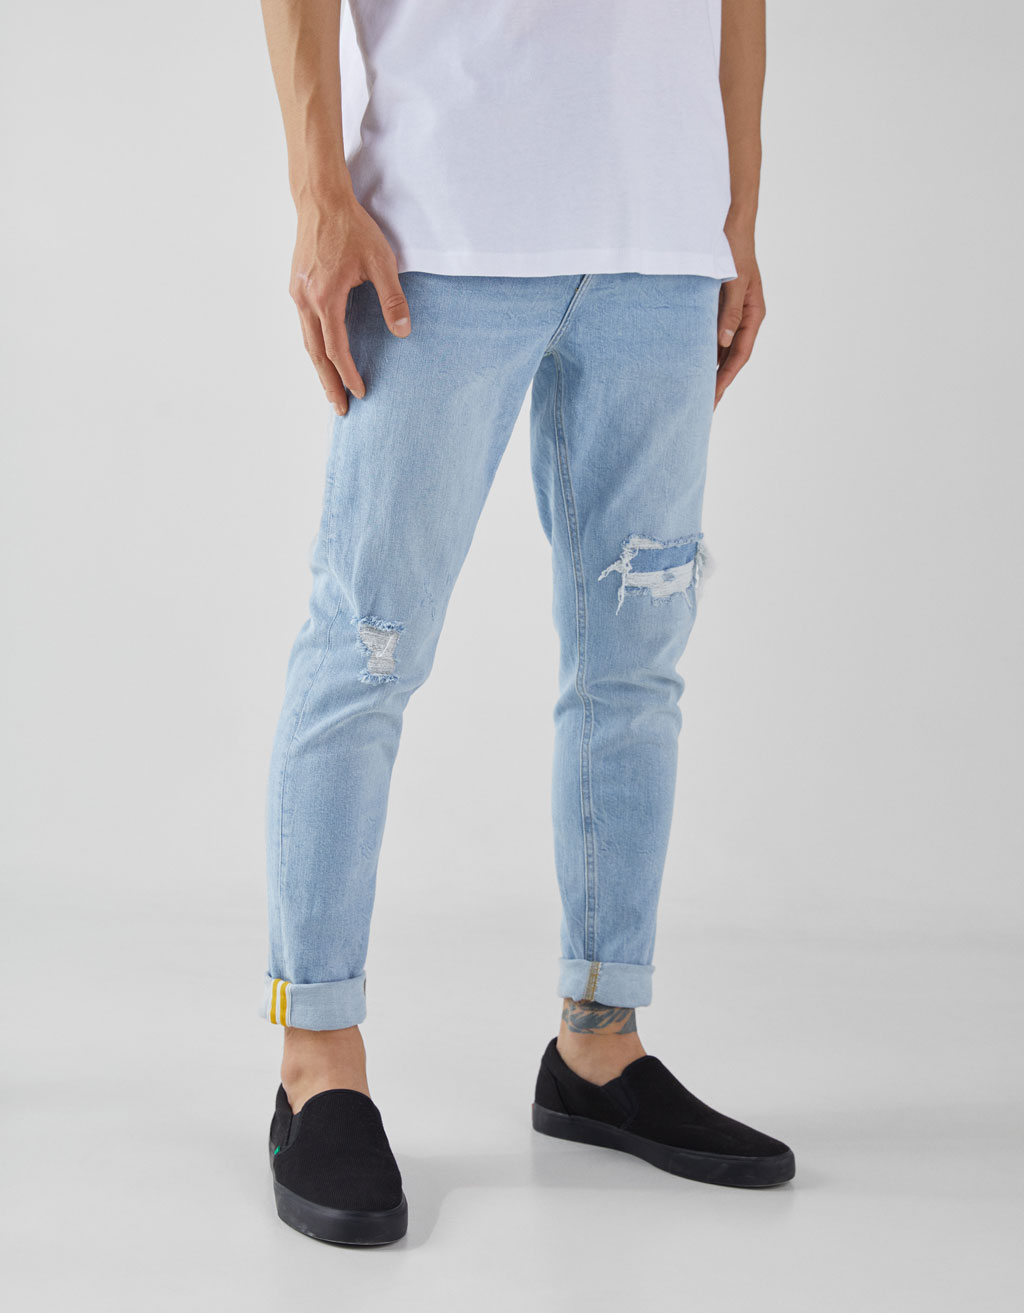 Jeans Carrot Fit Hombre Ultimo Coche